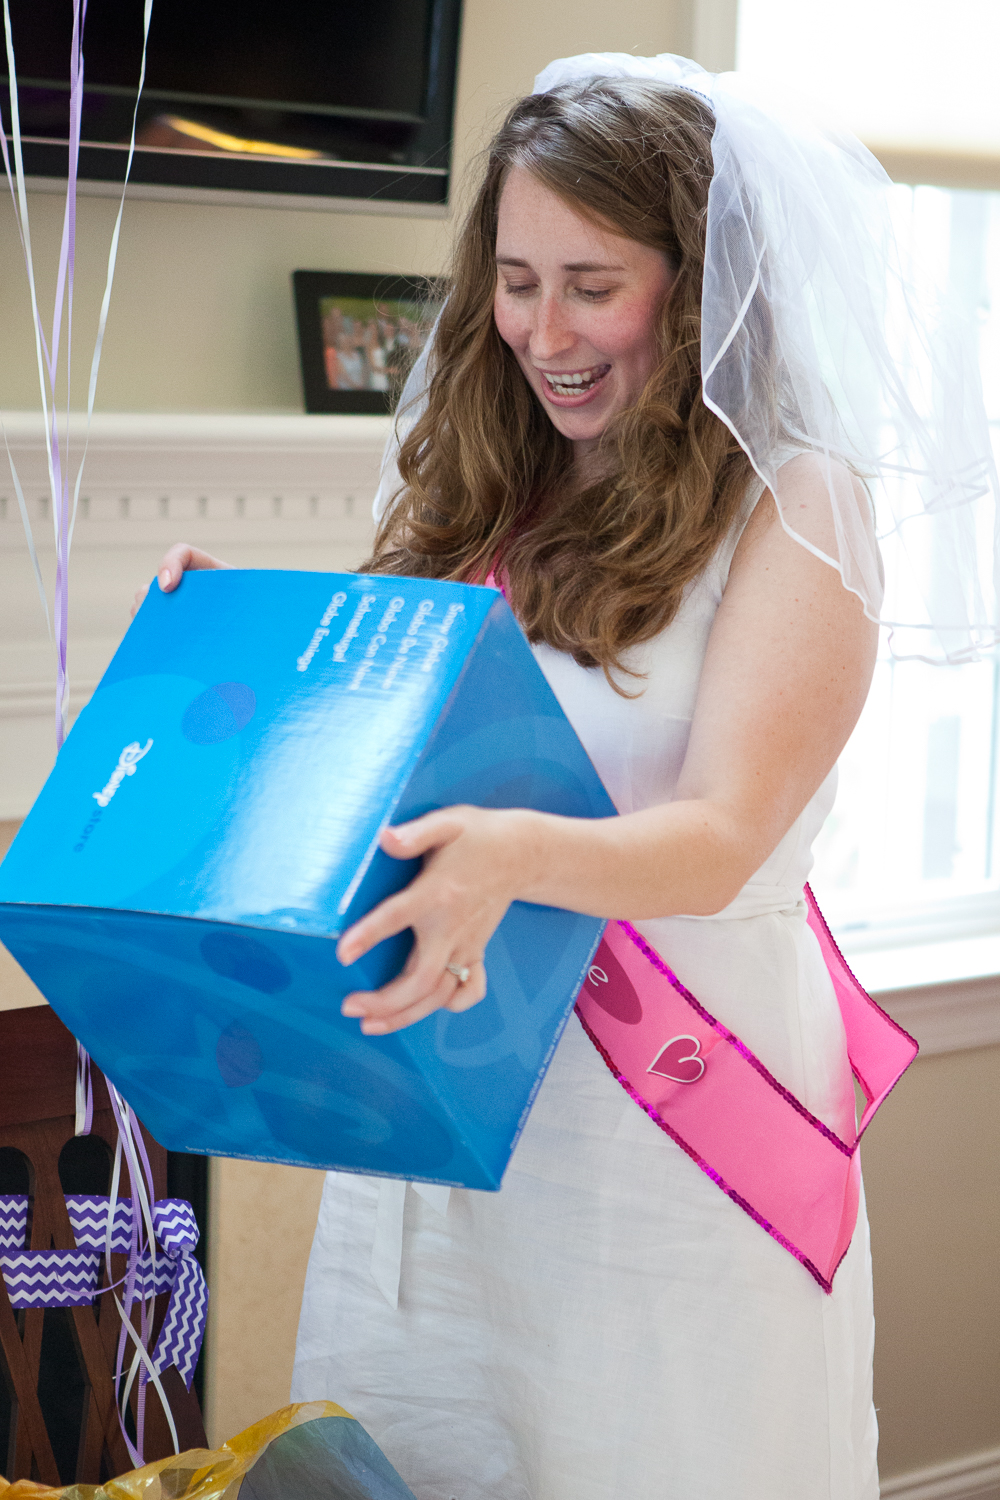 why-hire-a-photographer-for-your-bridal-shower-39.jpg